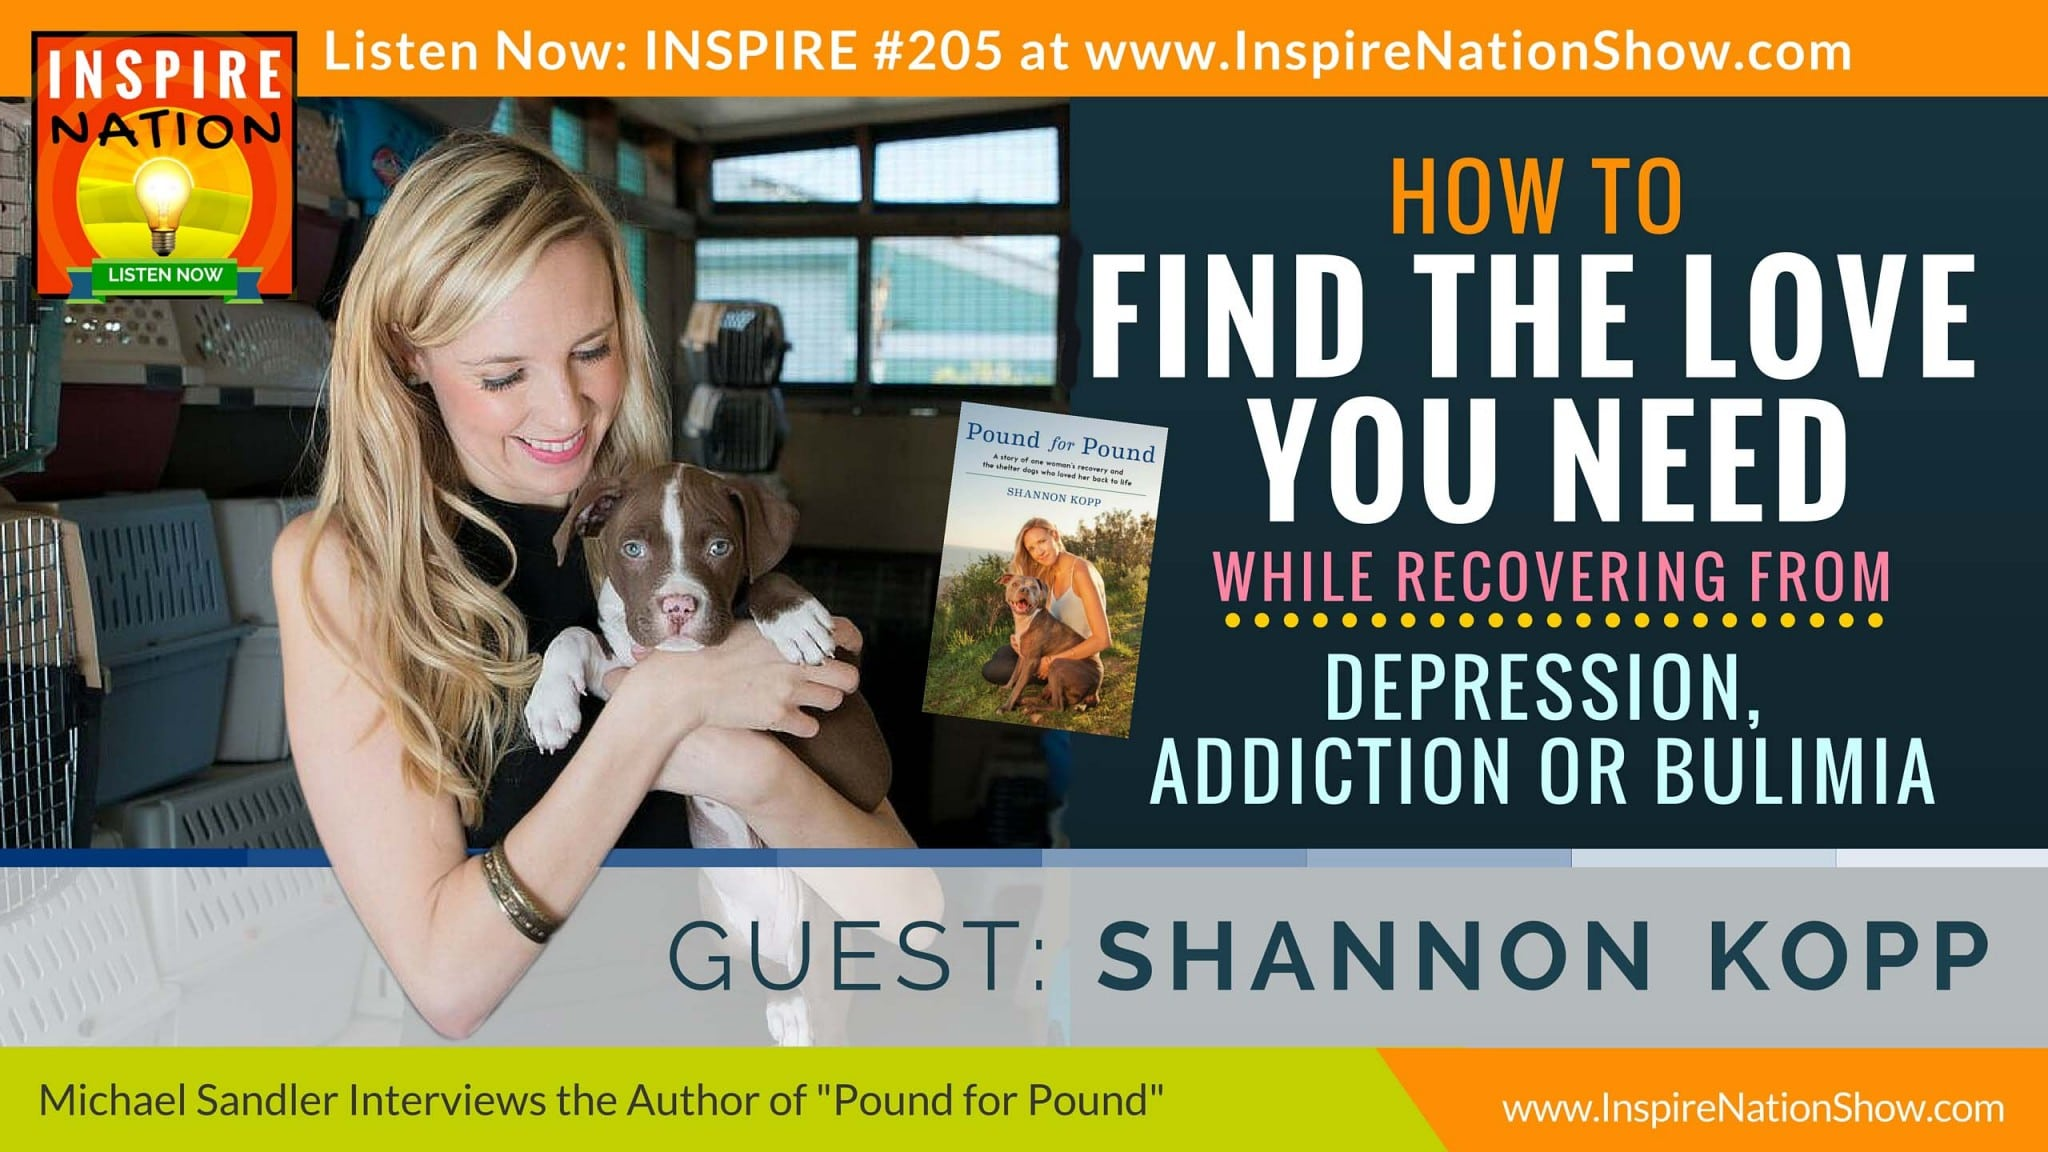 Listen to Michael Sandler's interview with Shannon Kopp on how rescue animals rescue us.